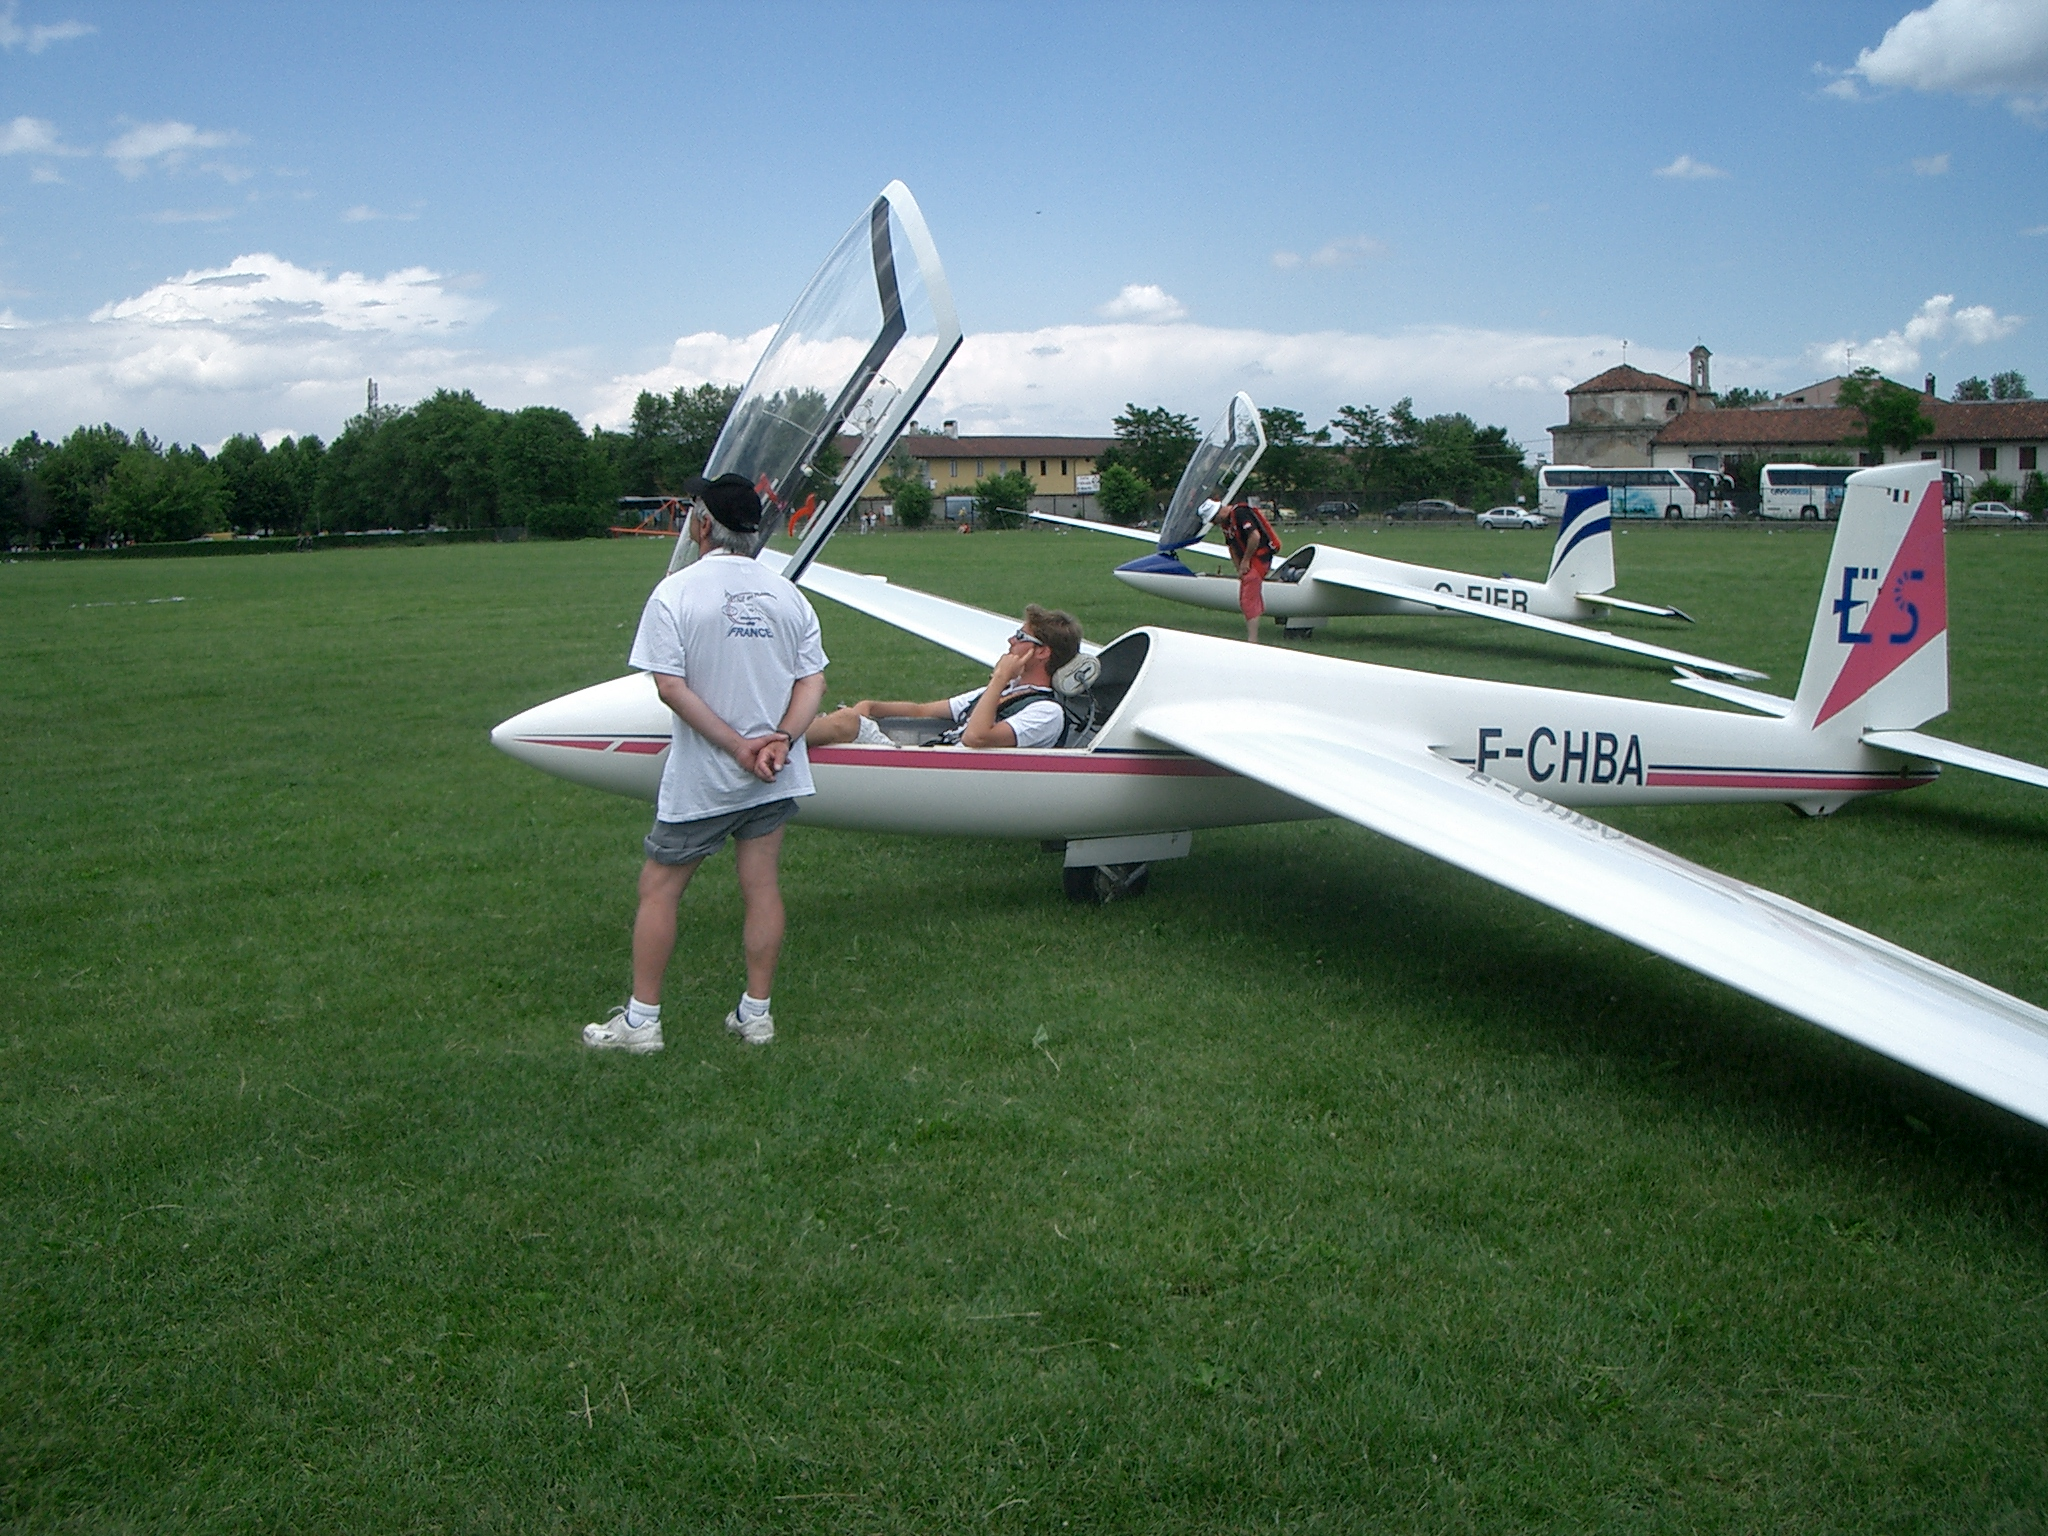 Erik Piriou in his Swift S-1